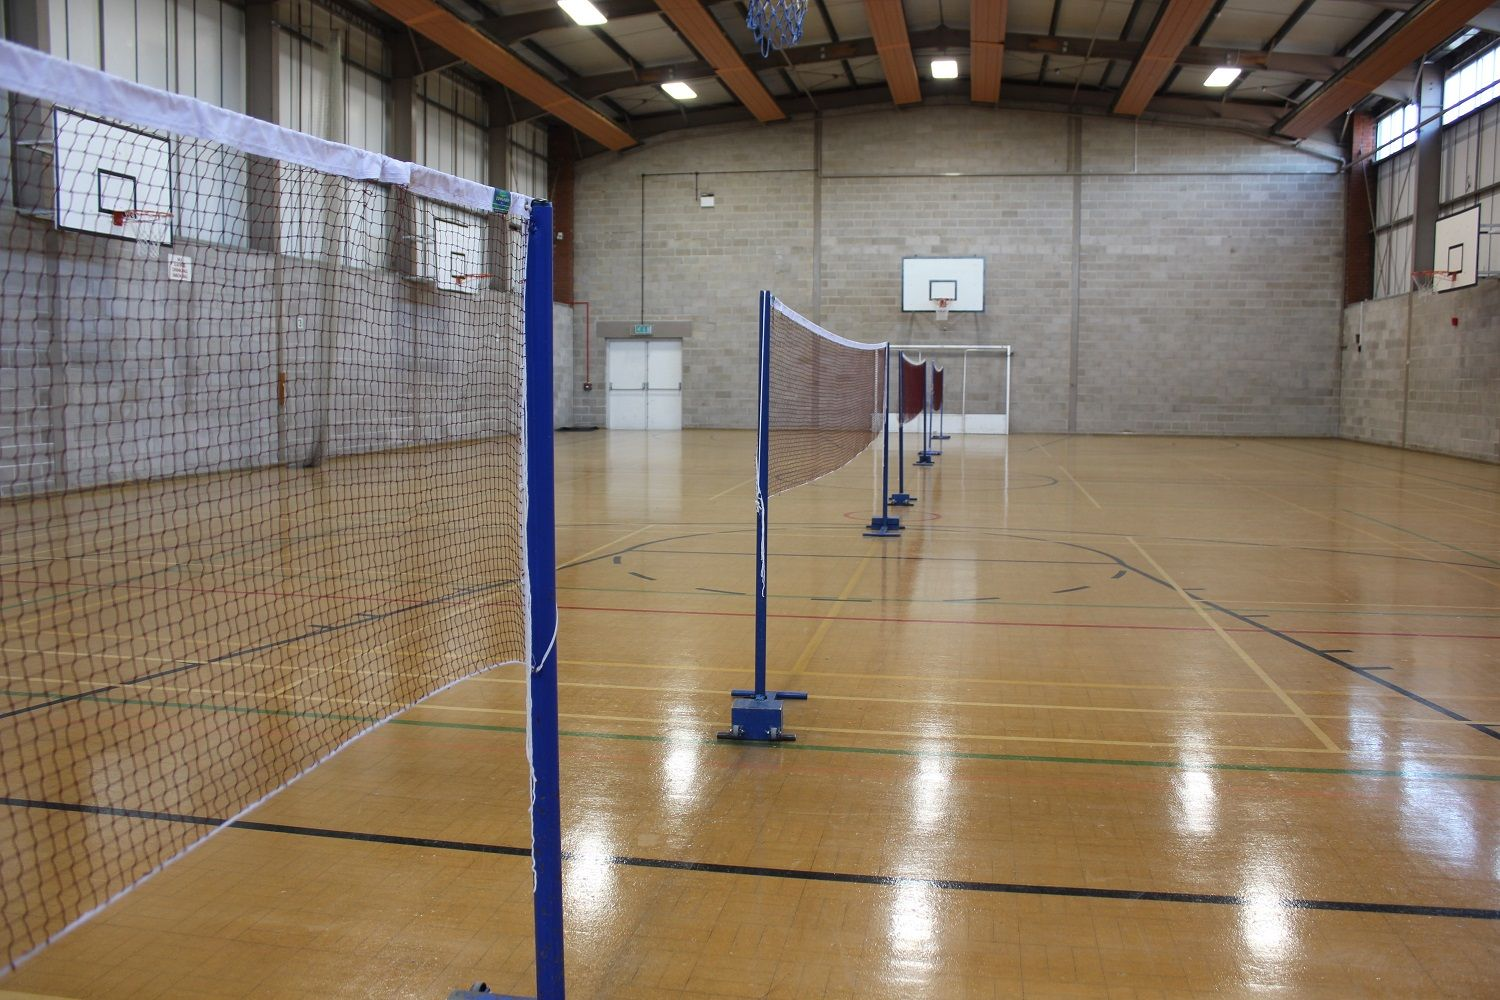 Heart of England School Sports Hall